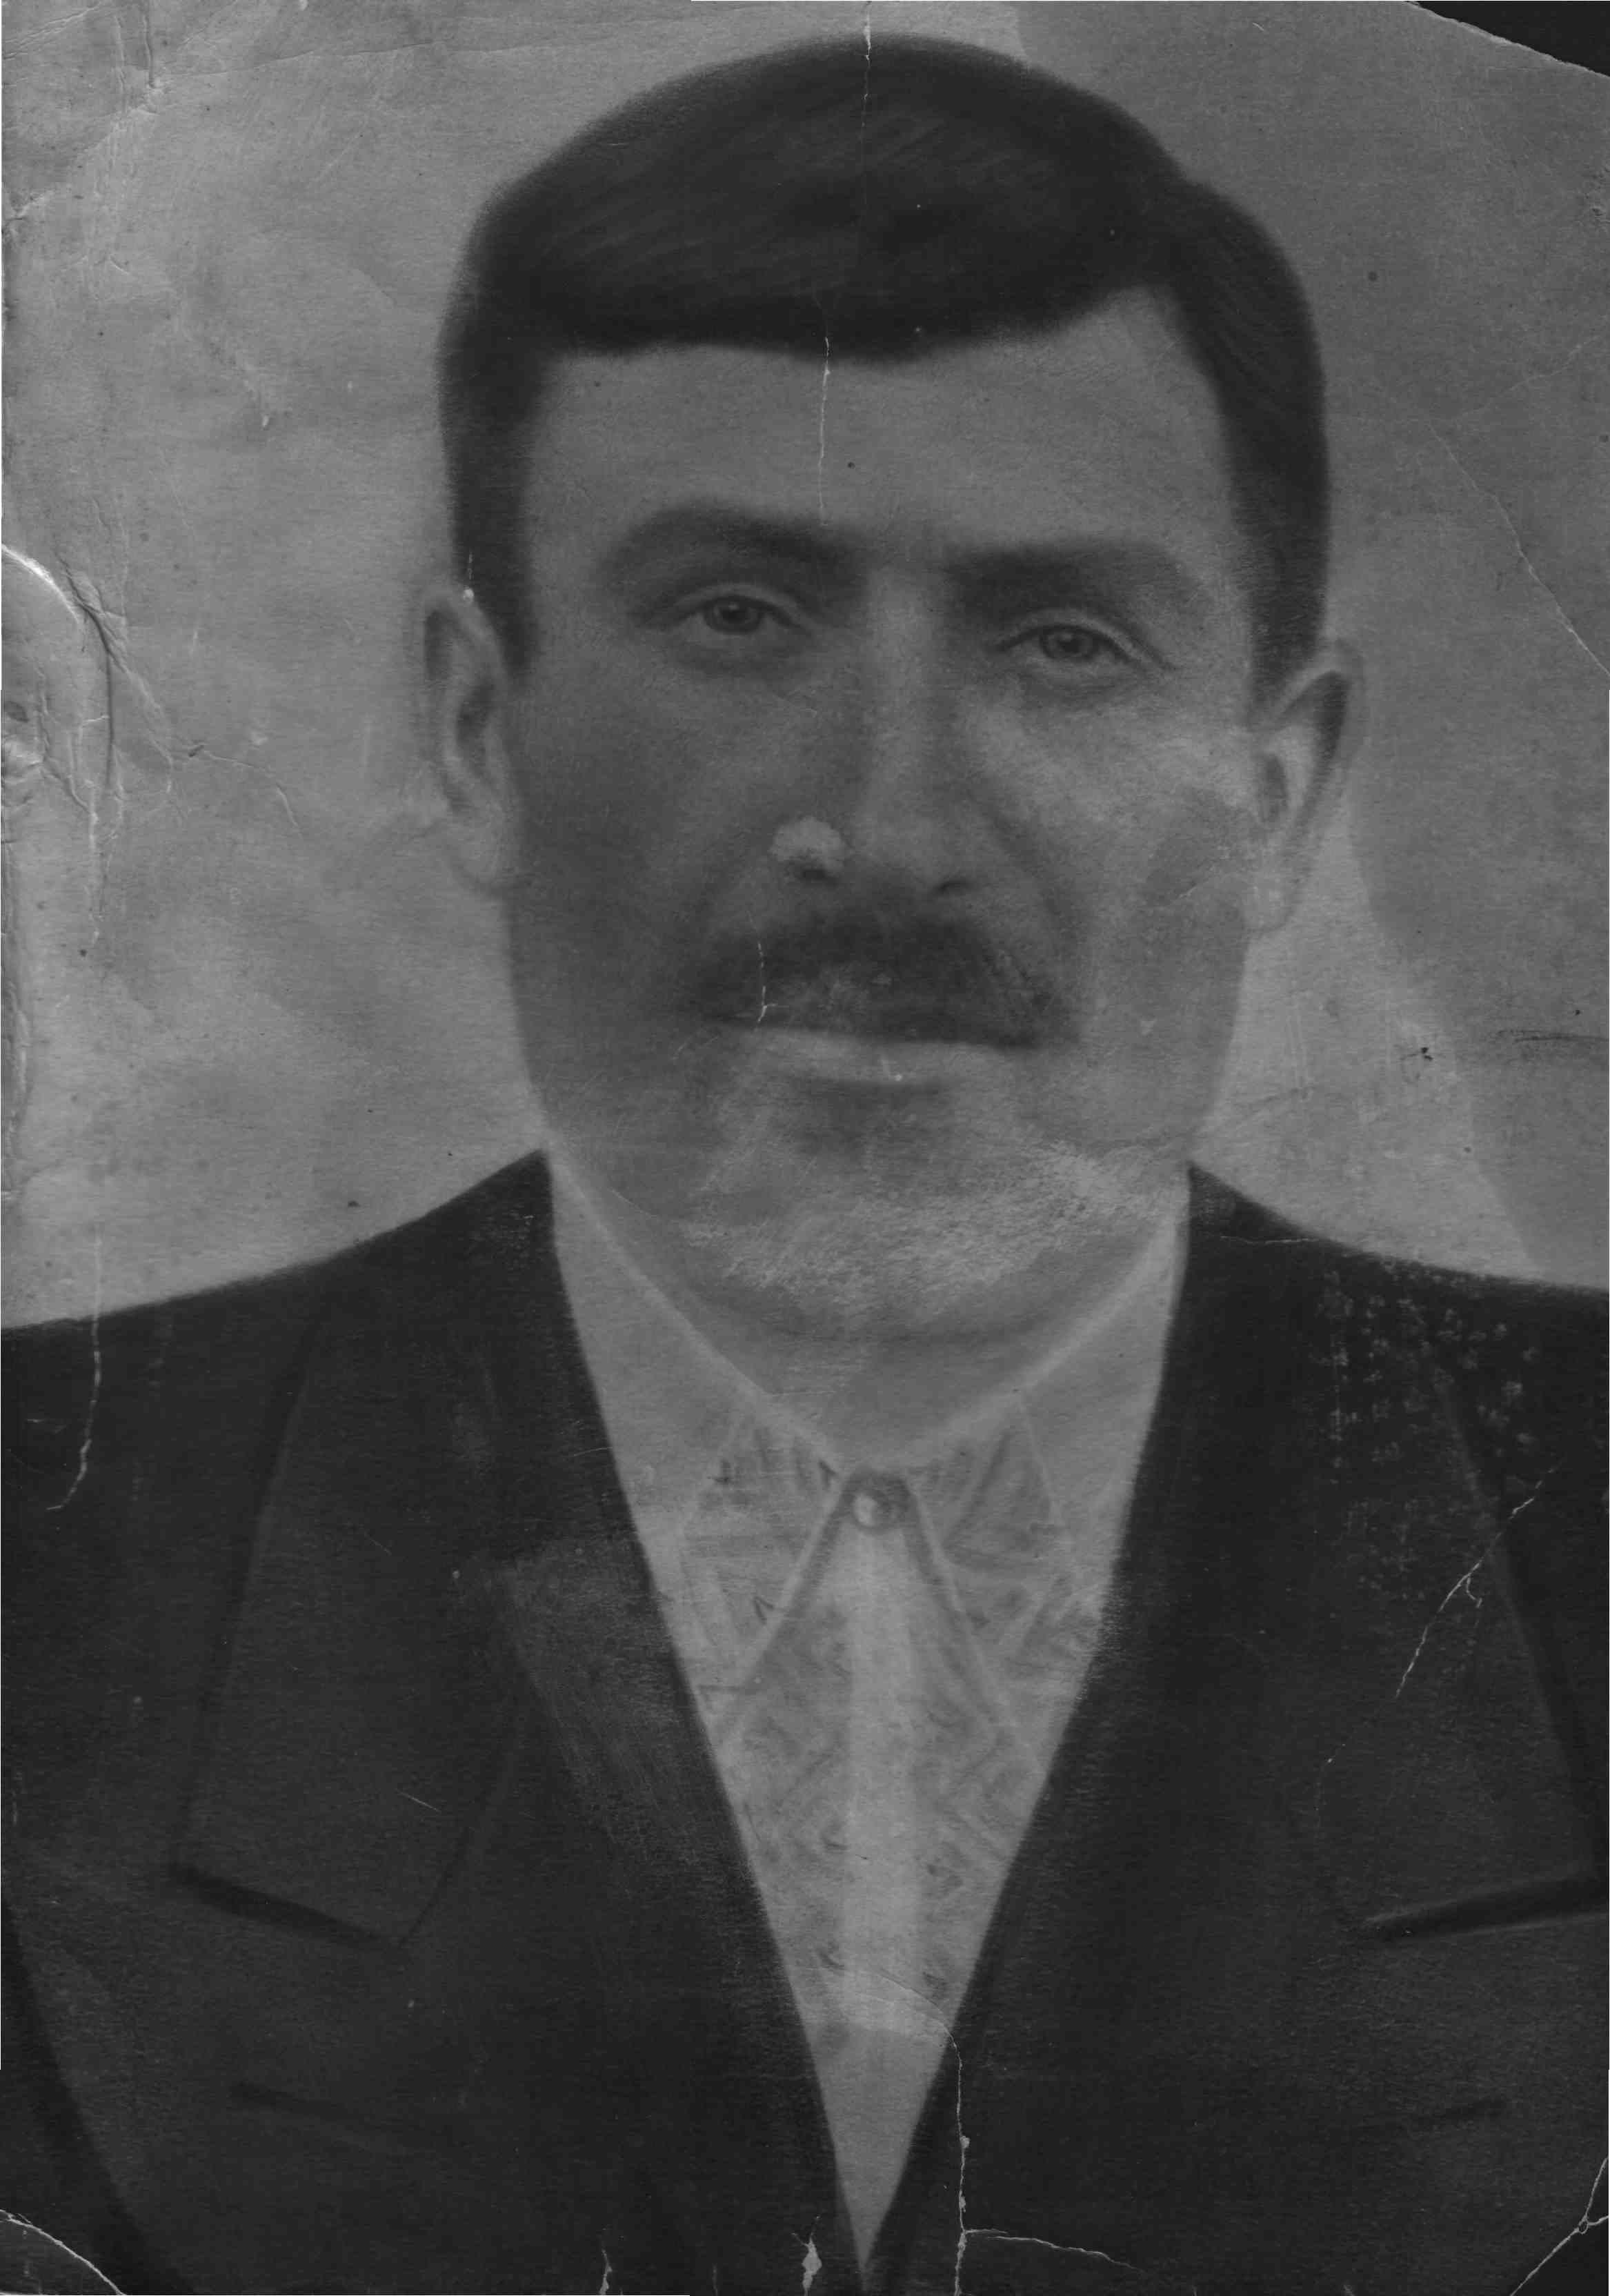 Moisey Shlyak, soviet soldier, killed in action